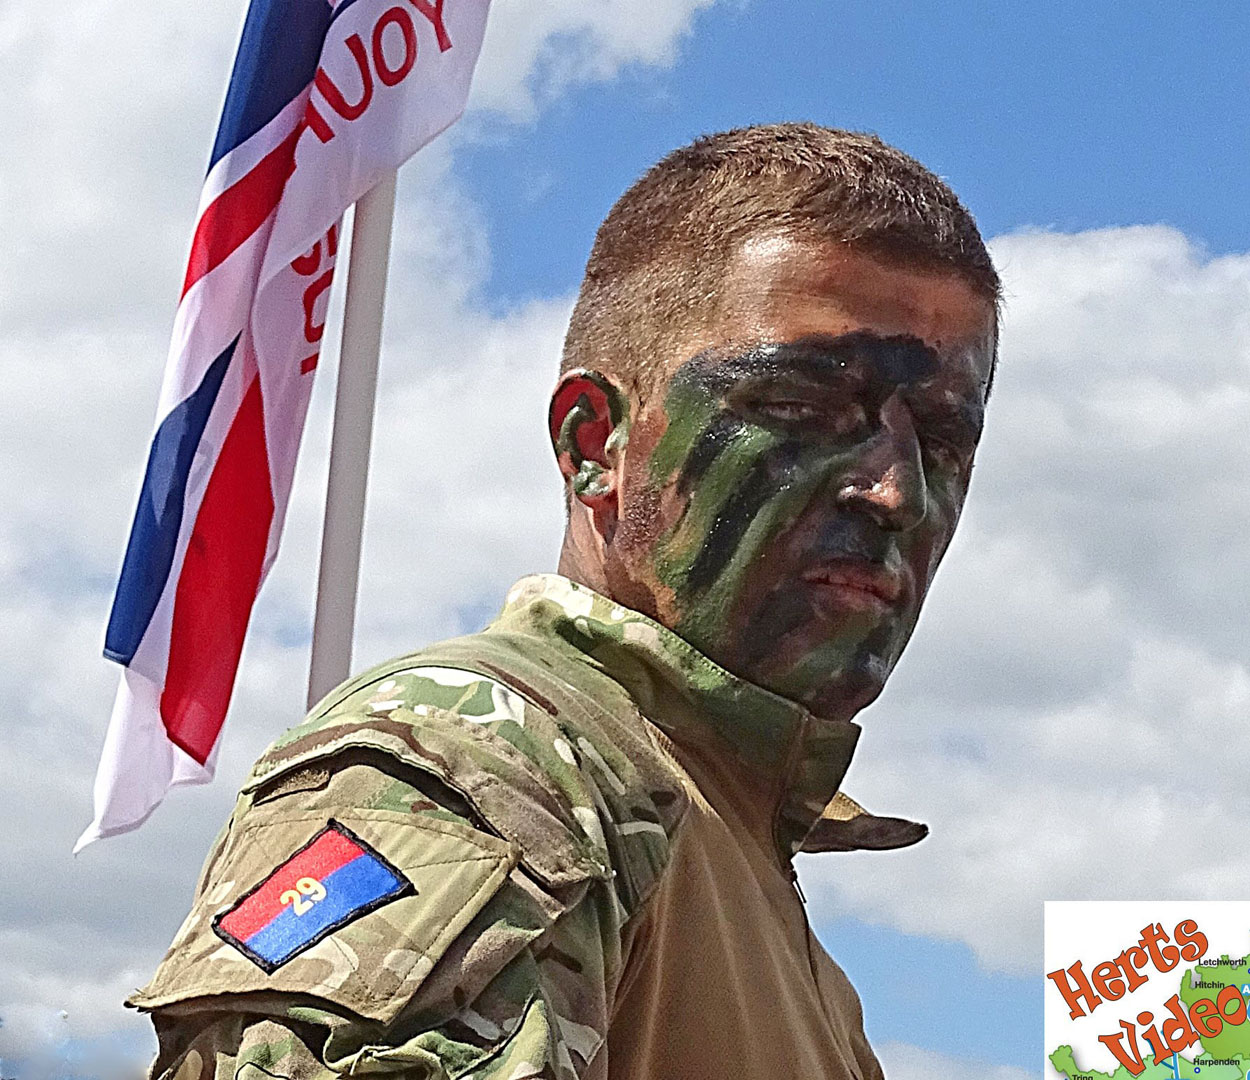 HARPENDEN ARMED FORCES DAY ARMY SOLDIER